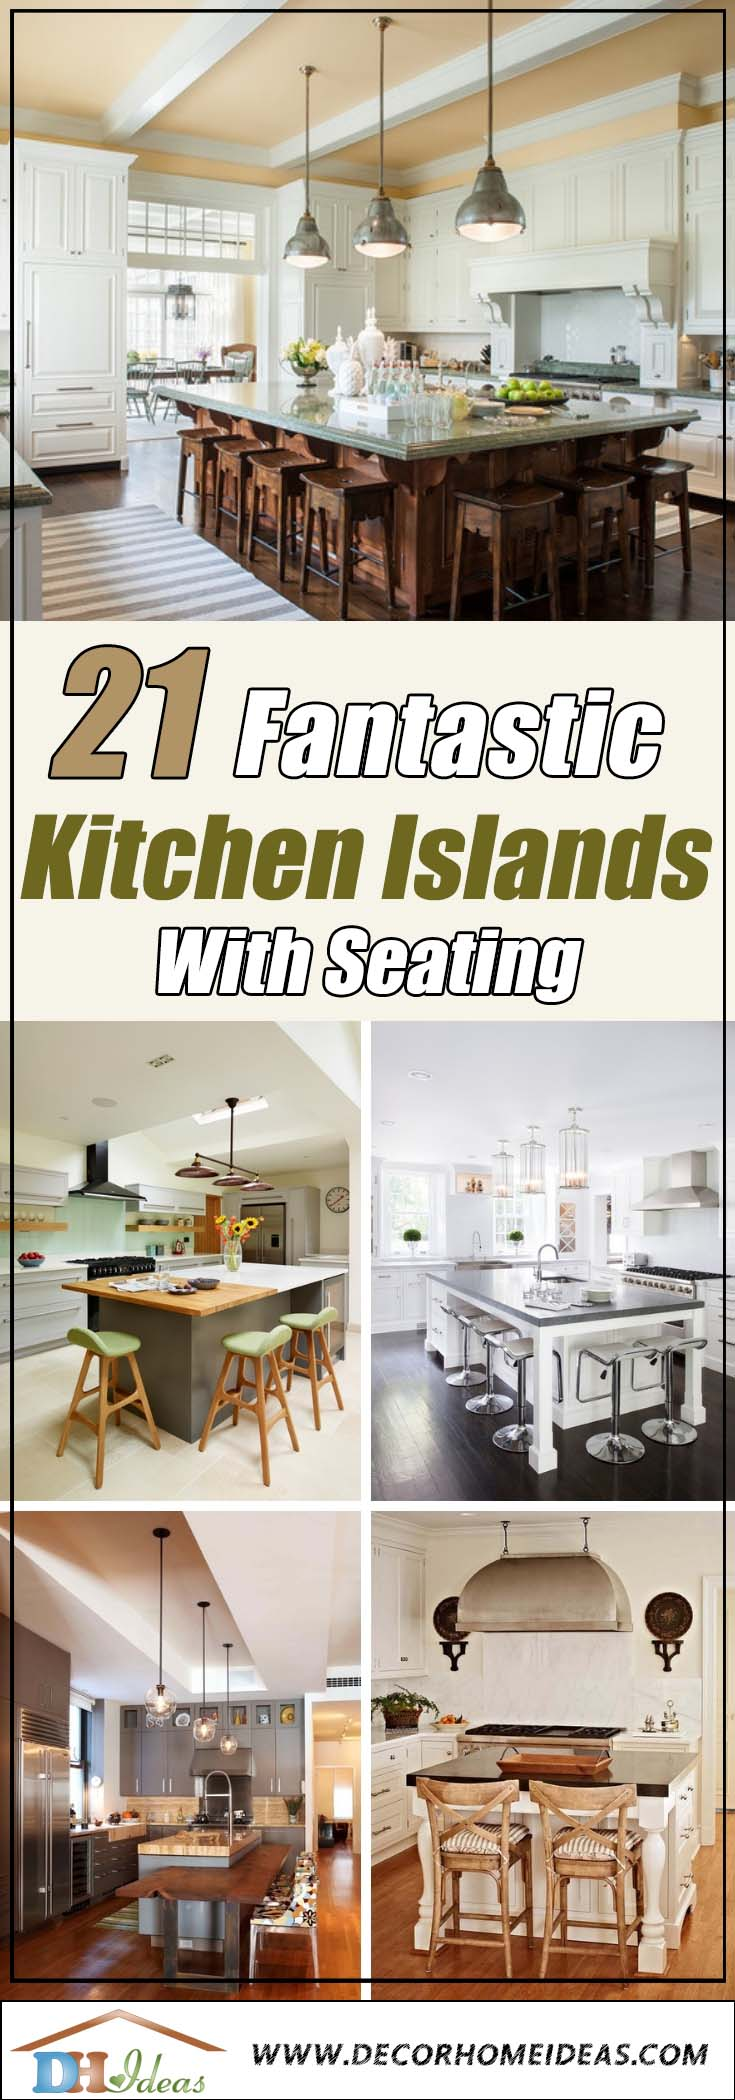 21 Kitchen Islands With Seating You'll Never Stop Dreaming Of | Great kitchen islands with seating to create comfort and coziness #kitchen #furniture #interiordesign #kitchenisland #seating #homedecor #decorhomeideas